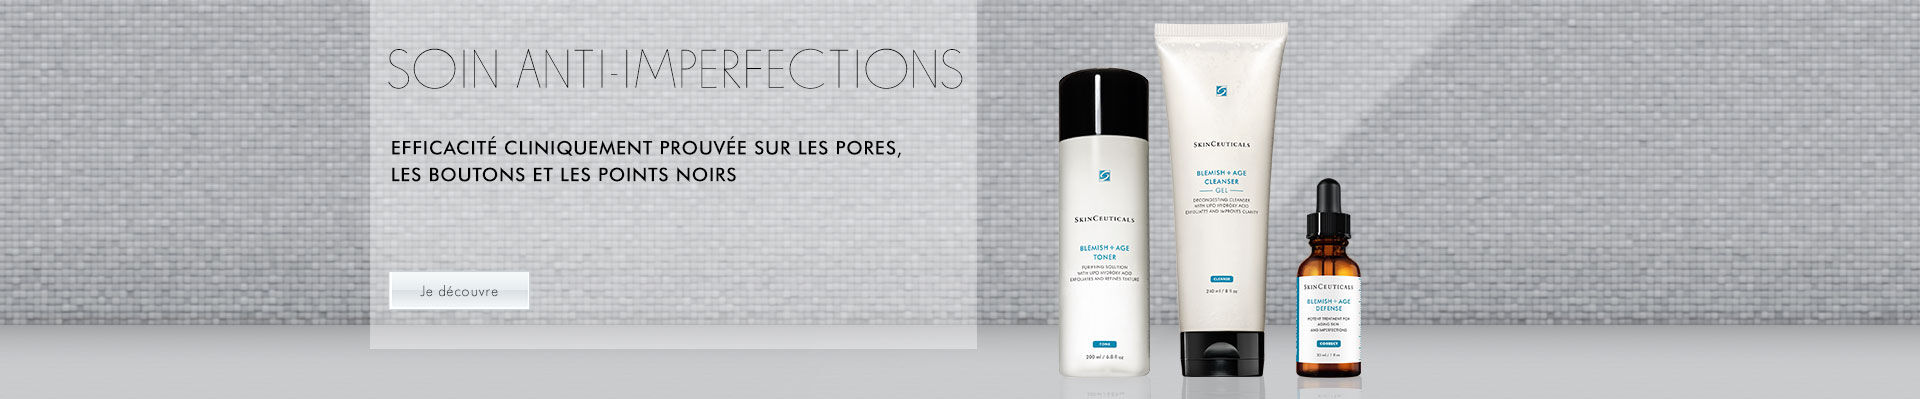 Soin Anti-imperfections